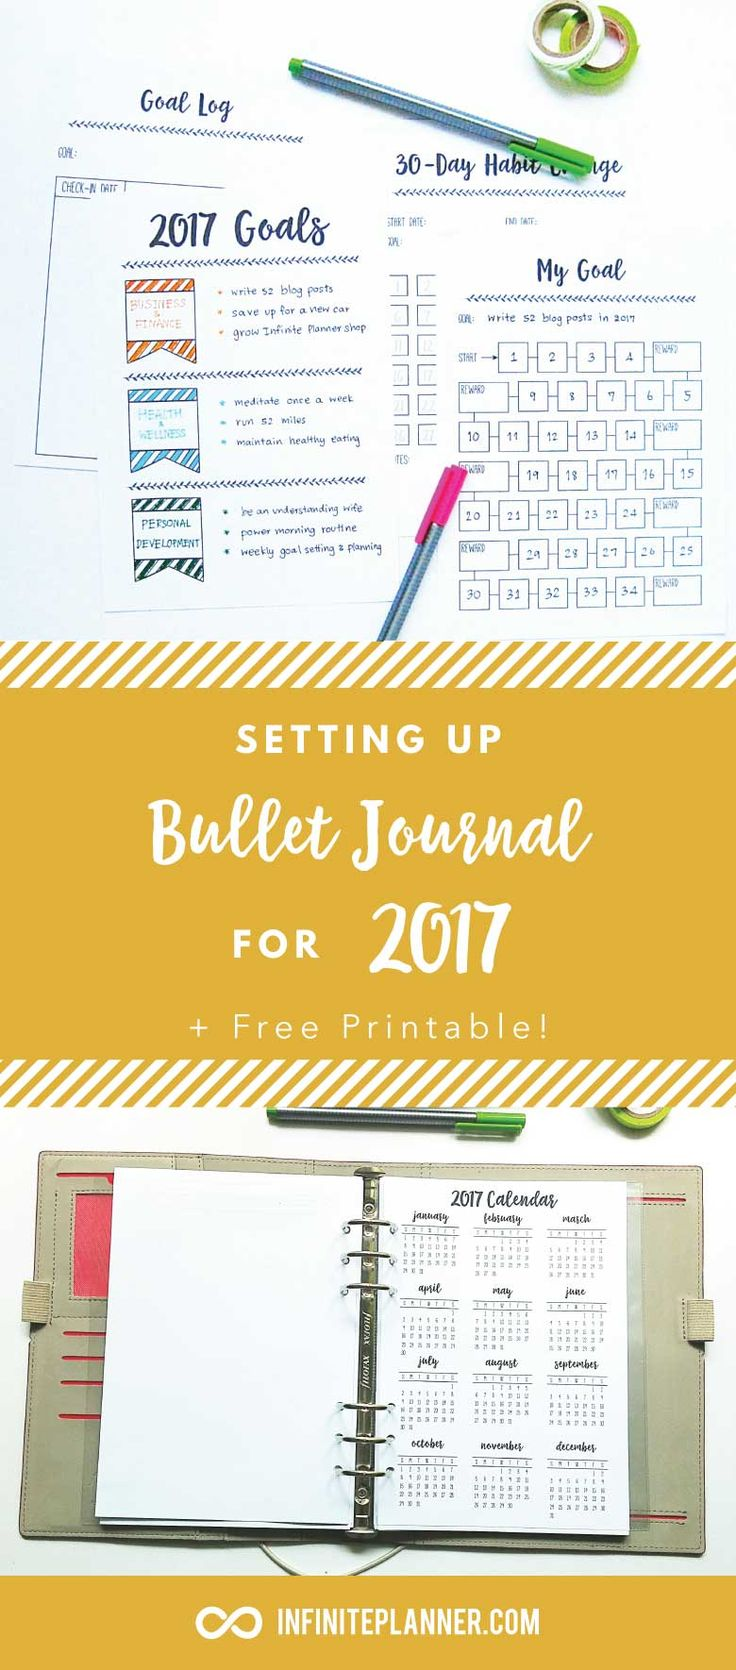 Setting up Bullet Journal for New Year (2017)